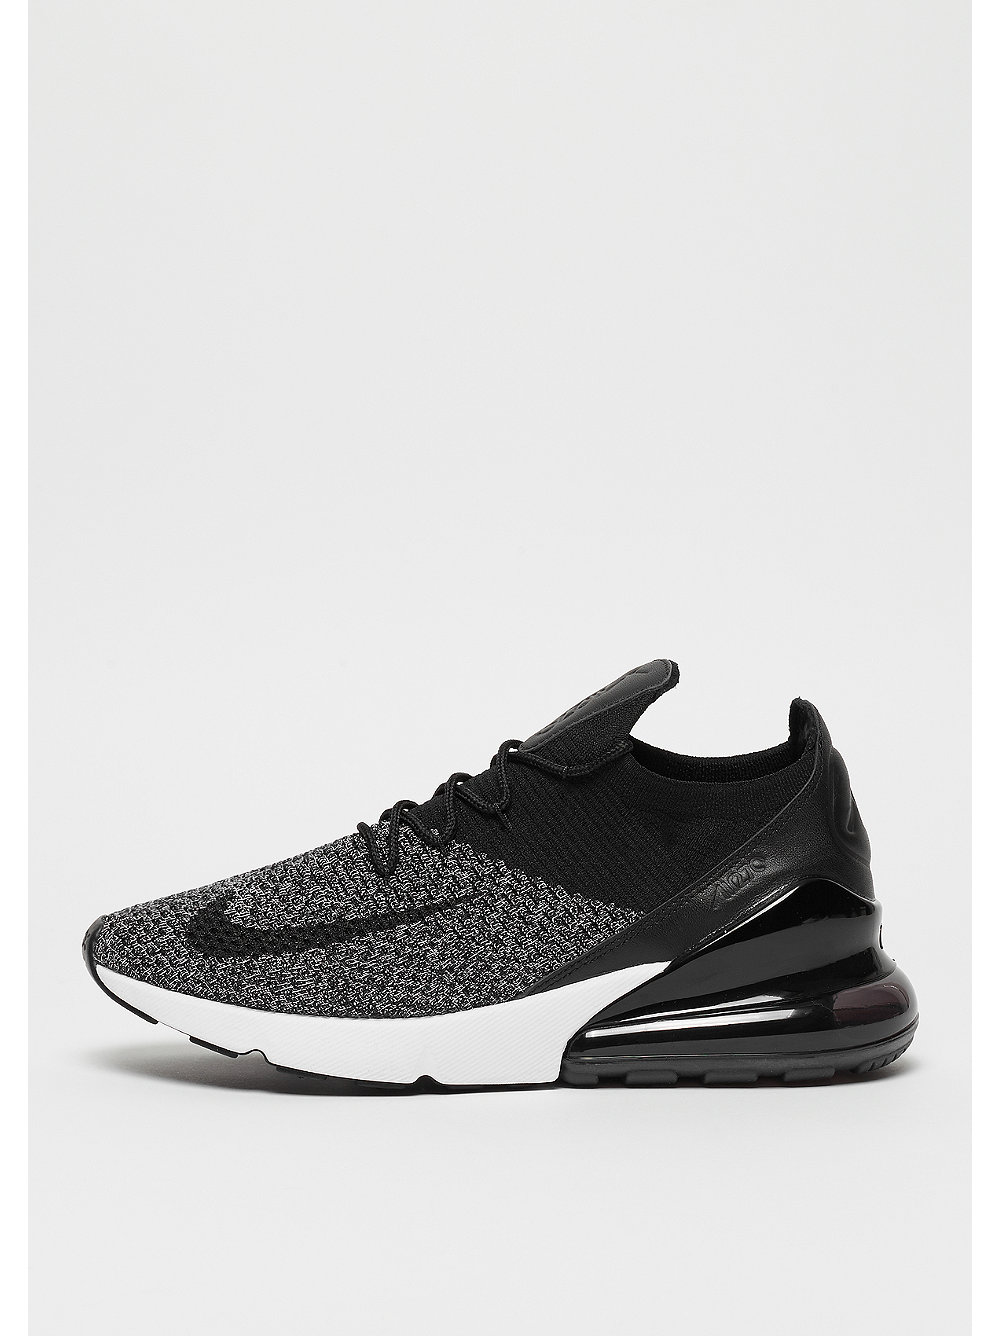 Nike Air Max Flyknit Gr 44 Oder 45.5